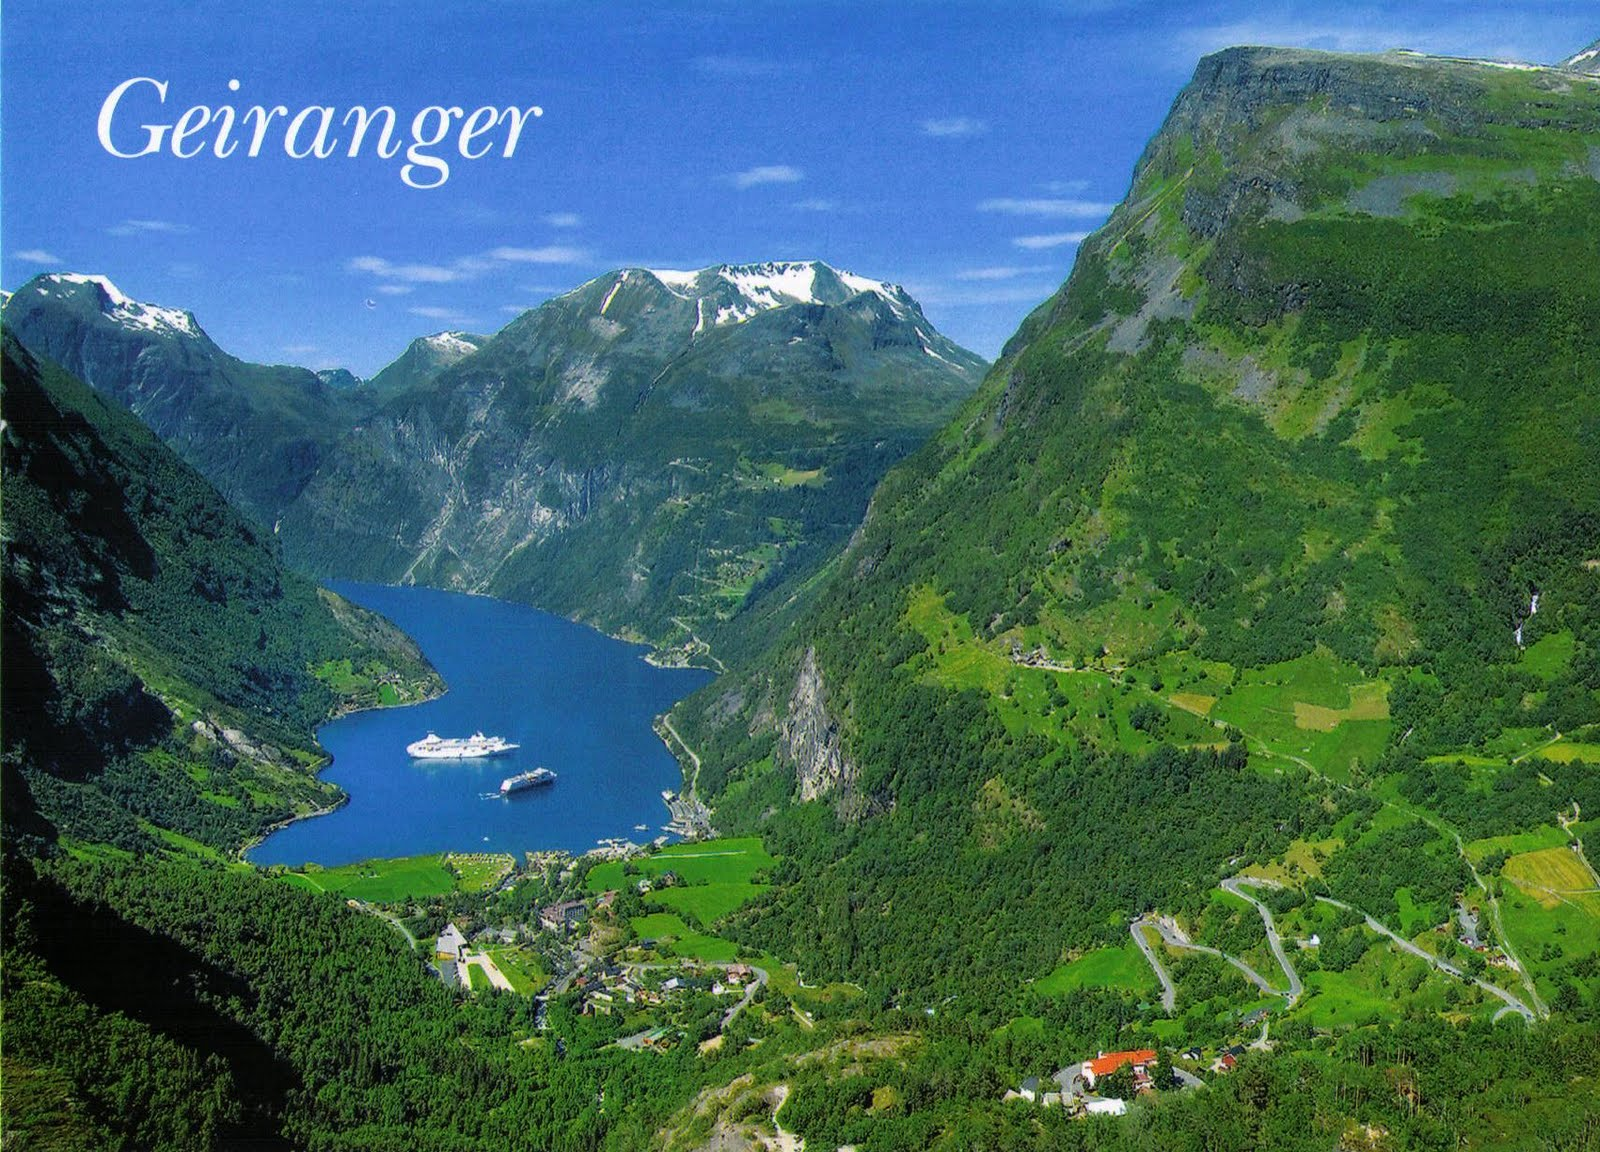 Geiranger Norway  city pictures gallery : Geiranger Norway Image